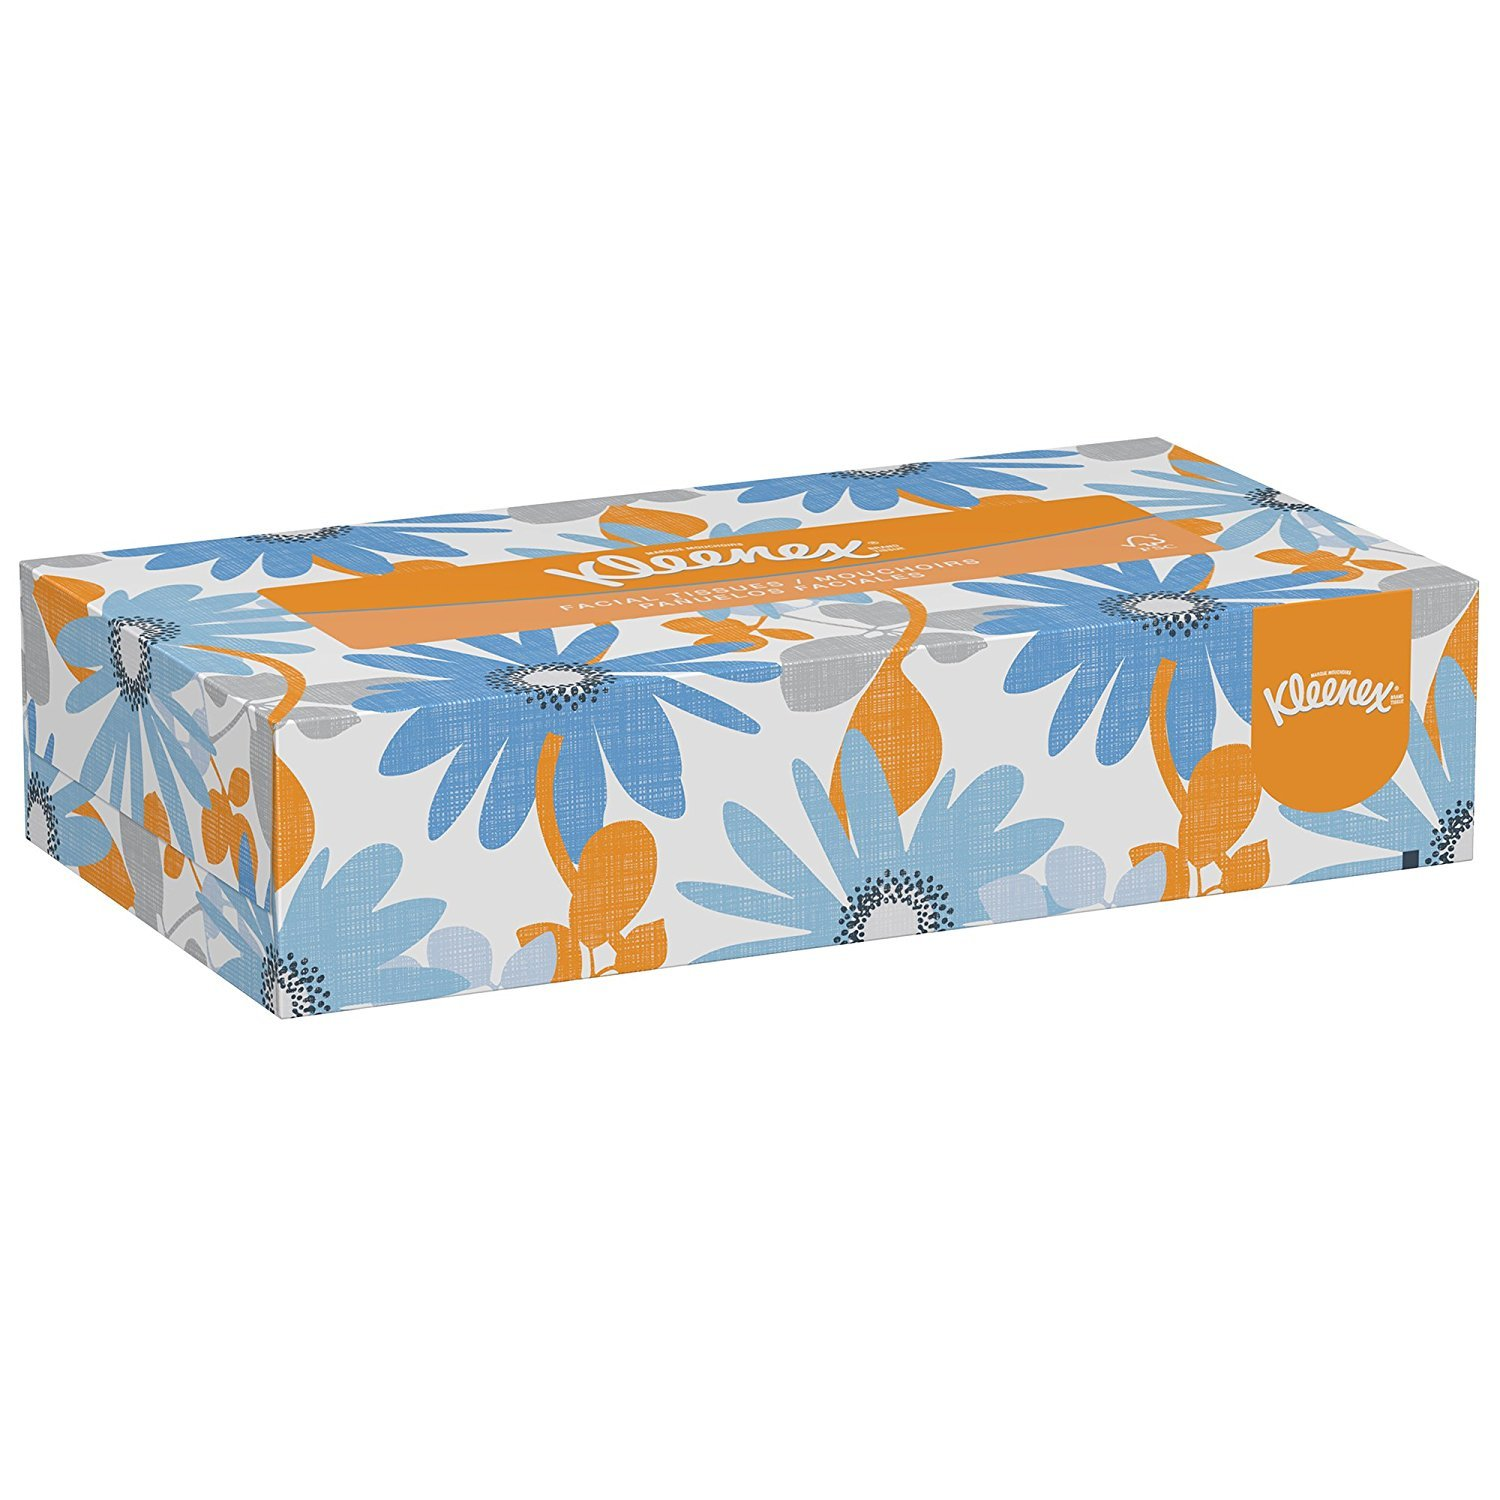 Kleenex Facial Tissue (03076), Flat ckwmDc Tissue Boxes,Convenience Case, 36 Boxes